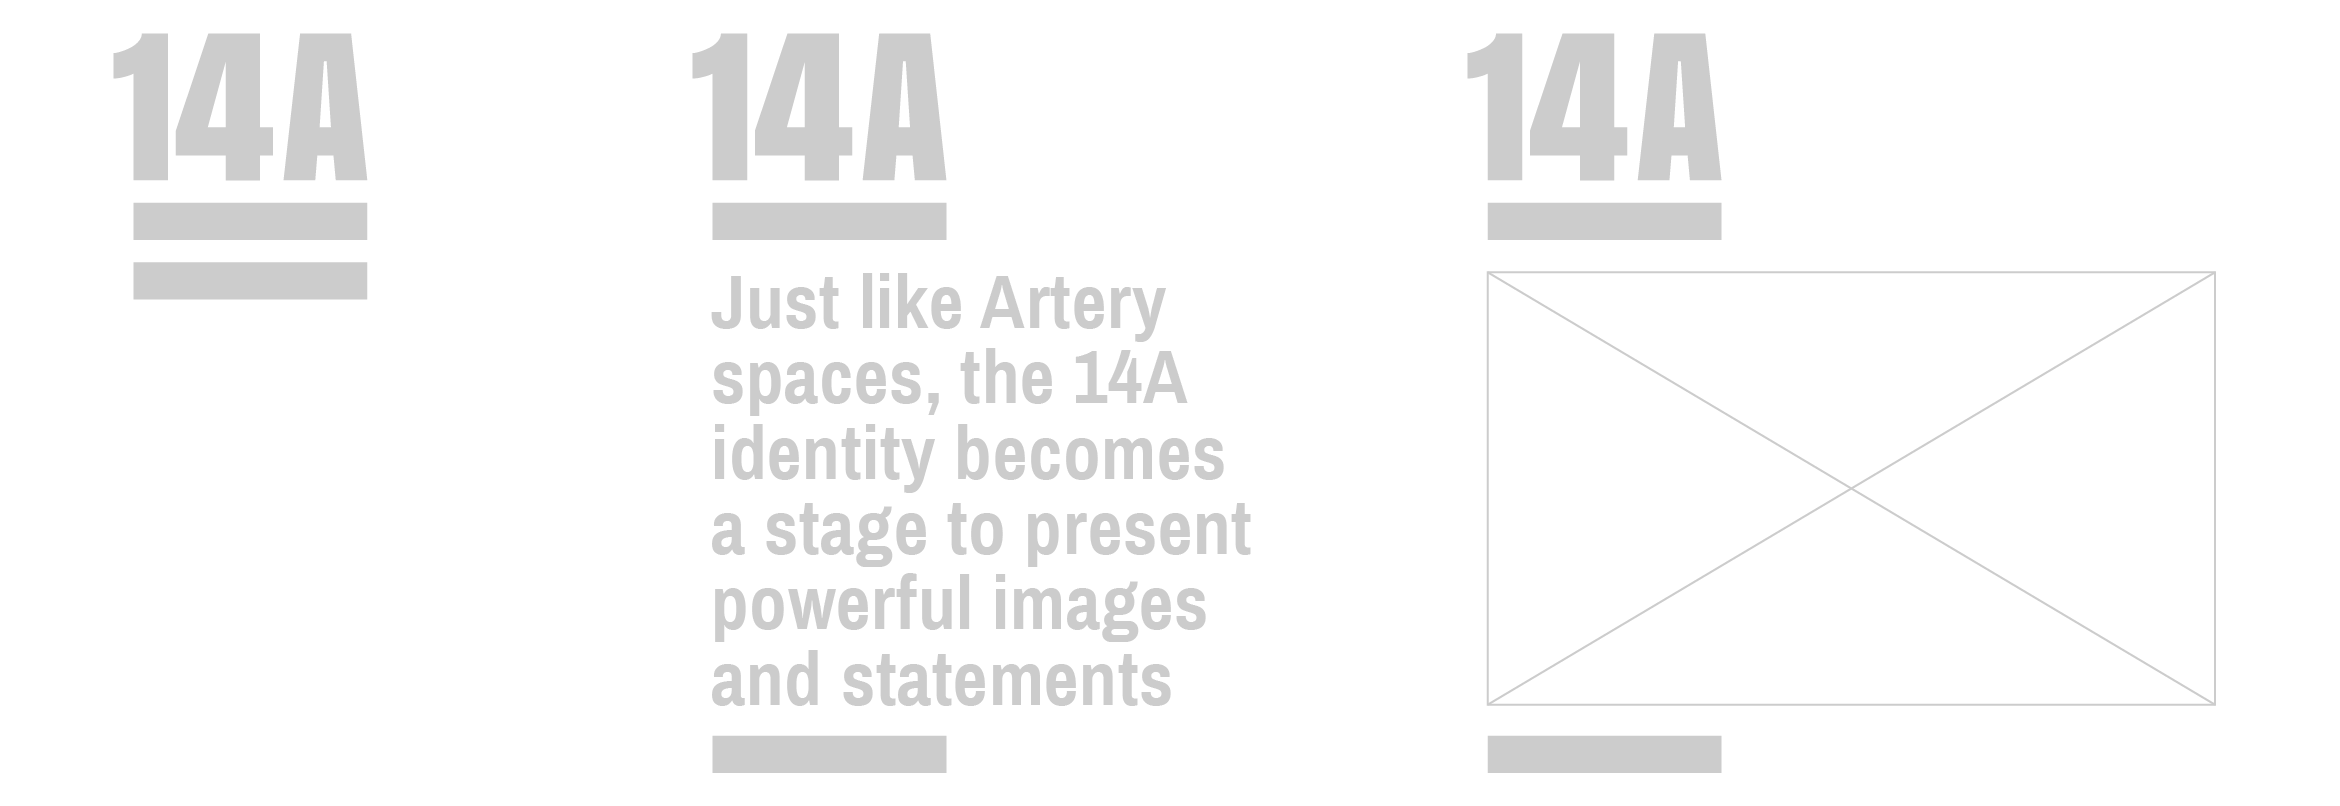 Graphic that shows how the 14A campaign logo is dynamic in that the equal sign that falls under 14A opens to create a space or a stage or simple quotes and images.